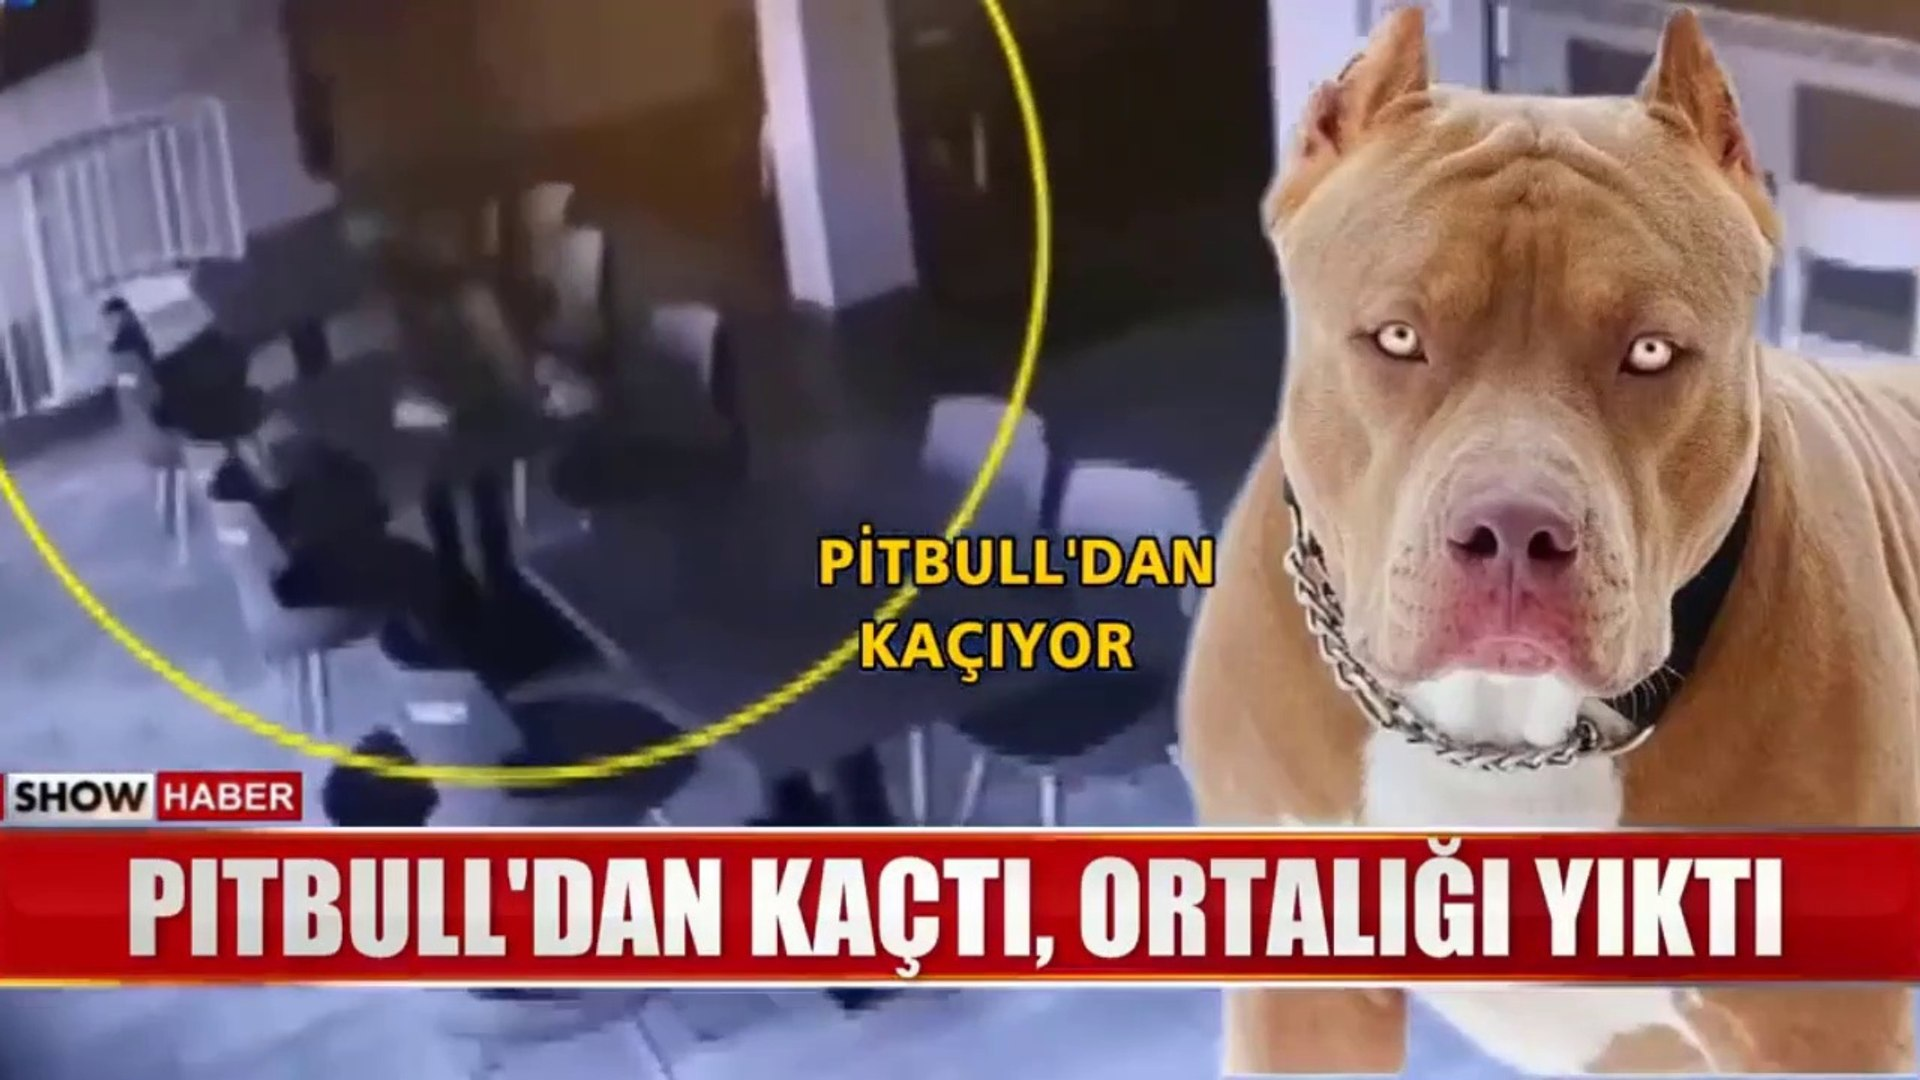 PiTBULL ile ADAMIN KARSILASMA ANLARI - PiTBULL TERRiER and 1 MAN vs